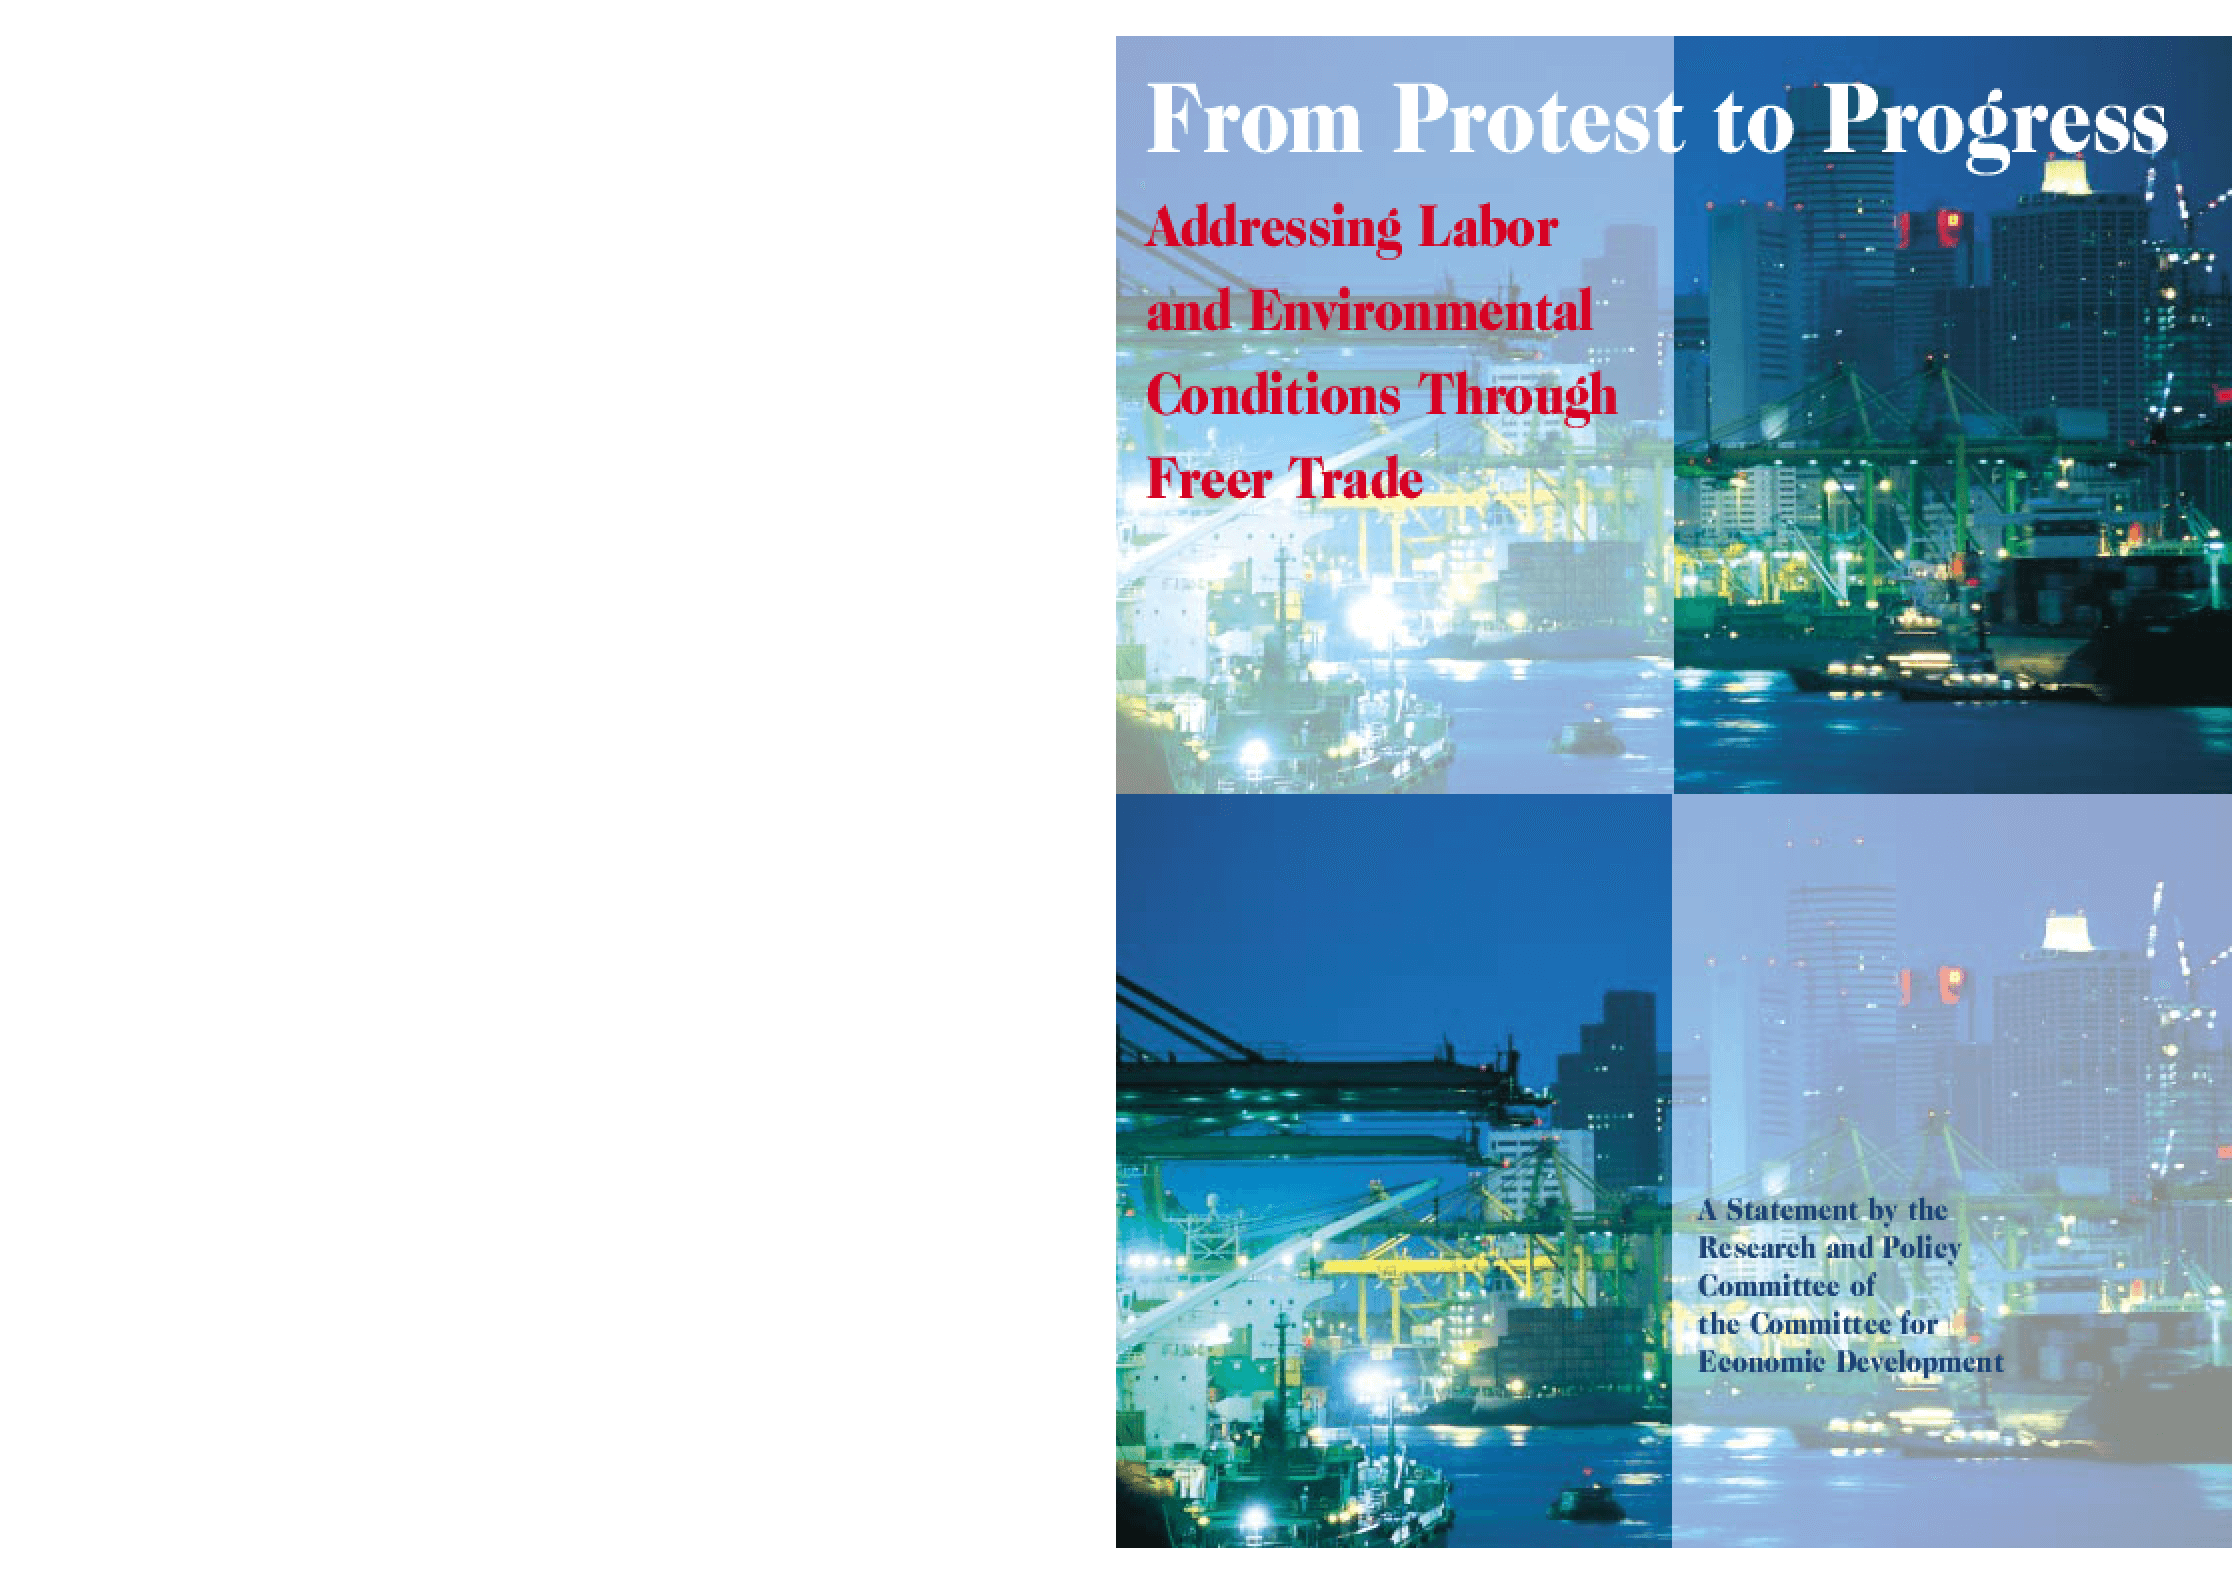 From Protest to Progress: Addressing Labor and Environmental Conditions Through Freer Trade